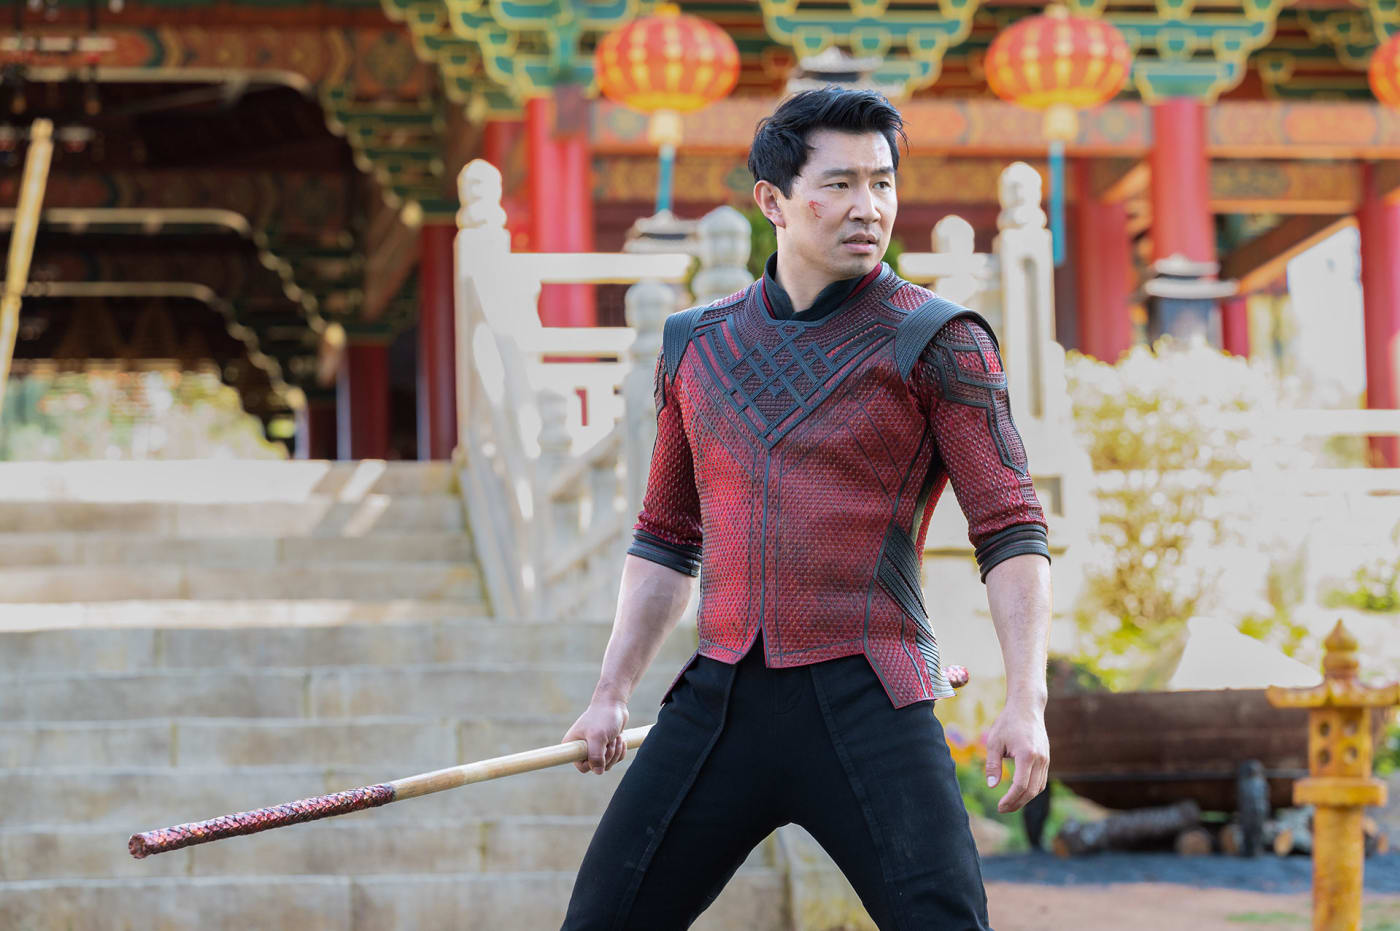 Simu Liu starring in Shang Chi and the Legend of the Ten Rings